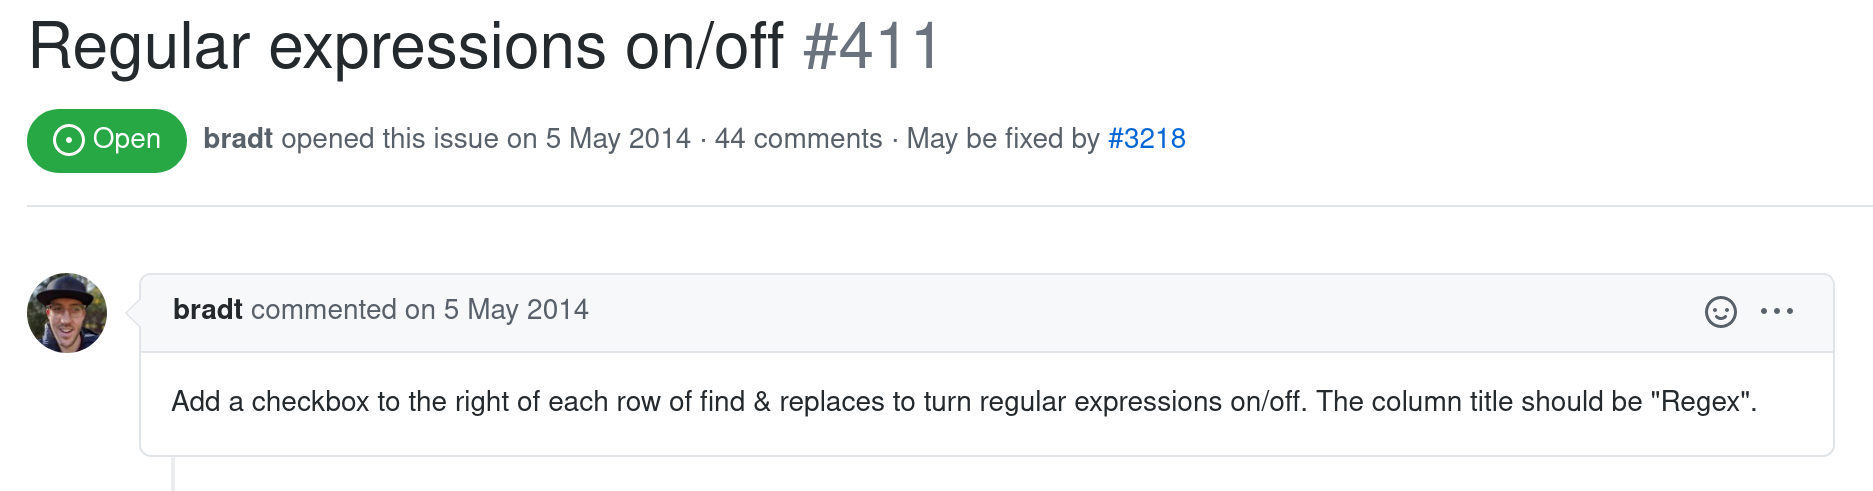 Regular Expressions Issue 411